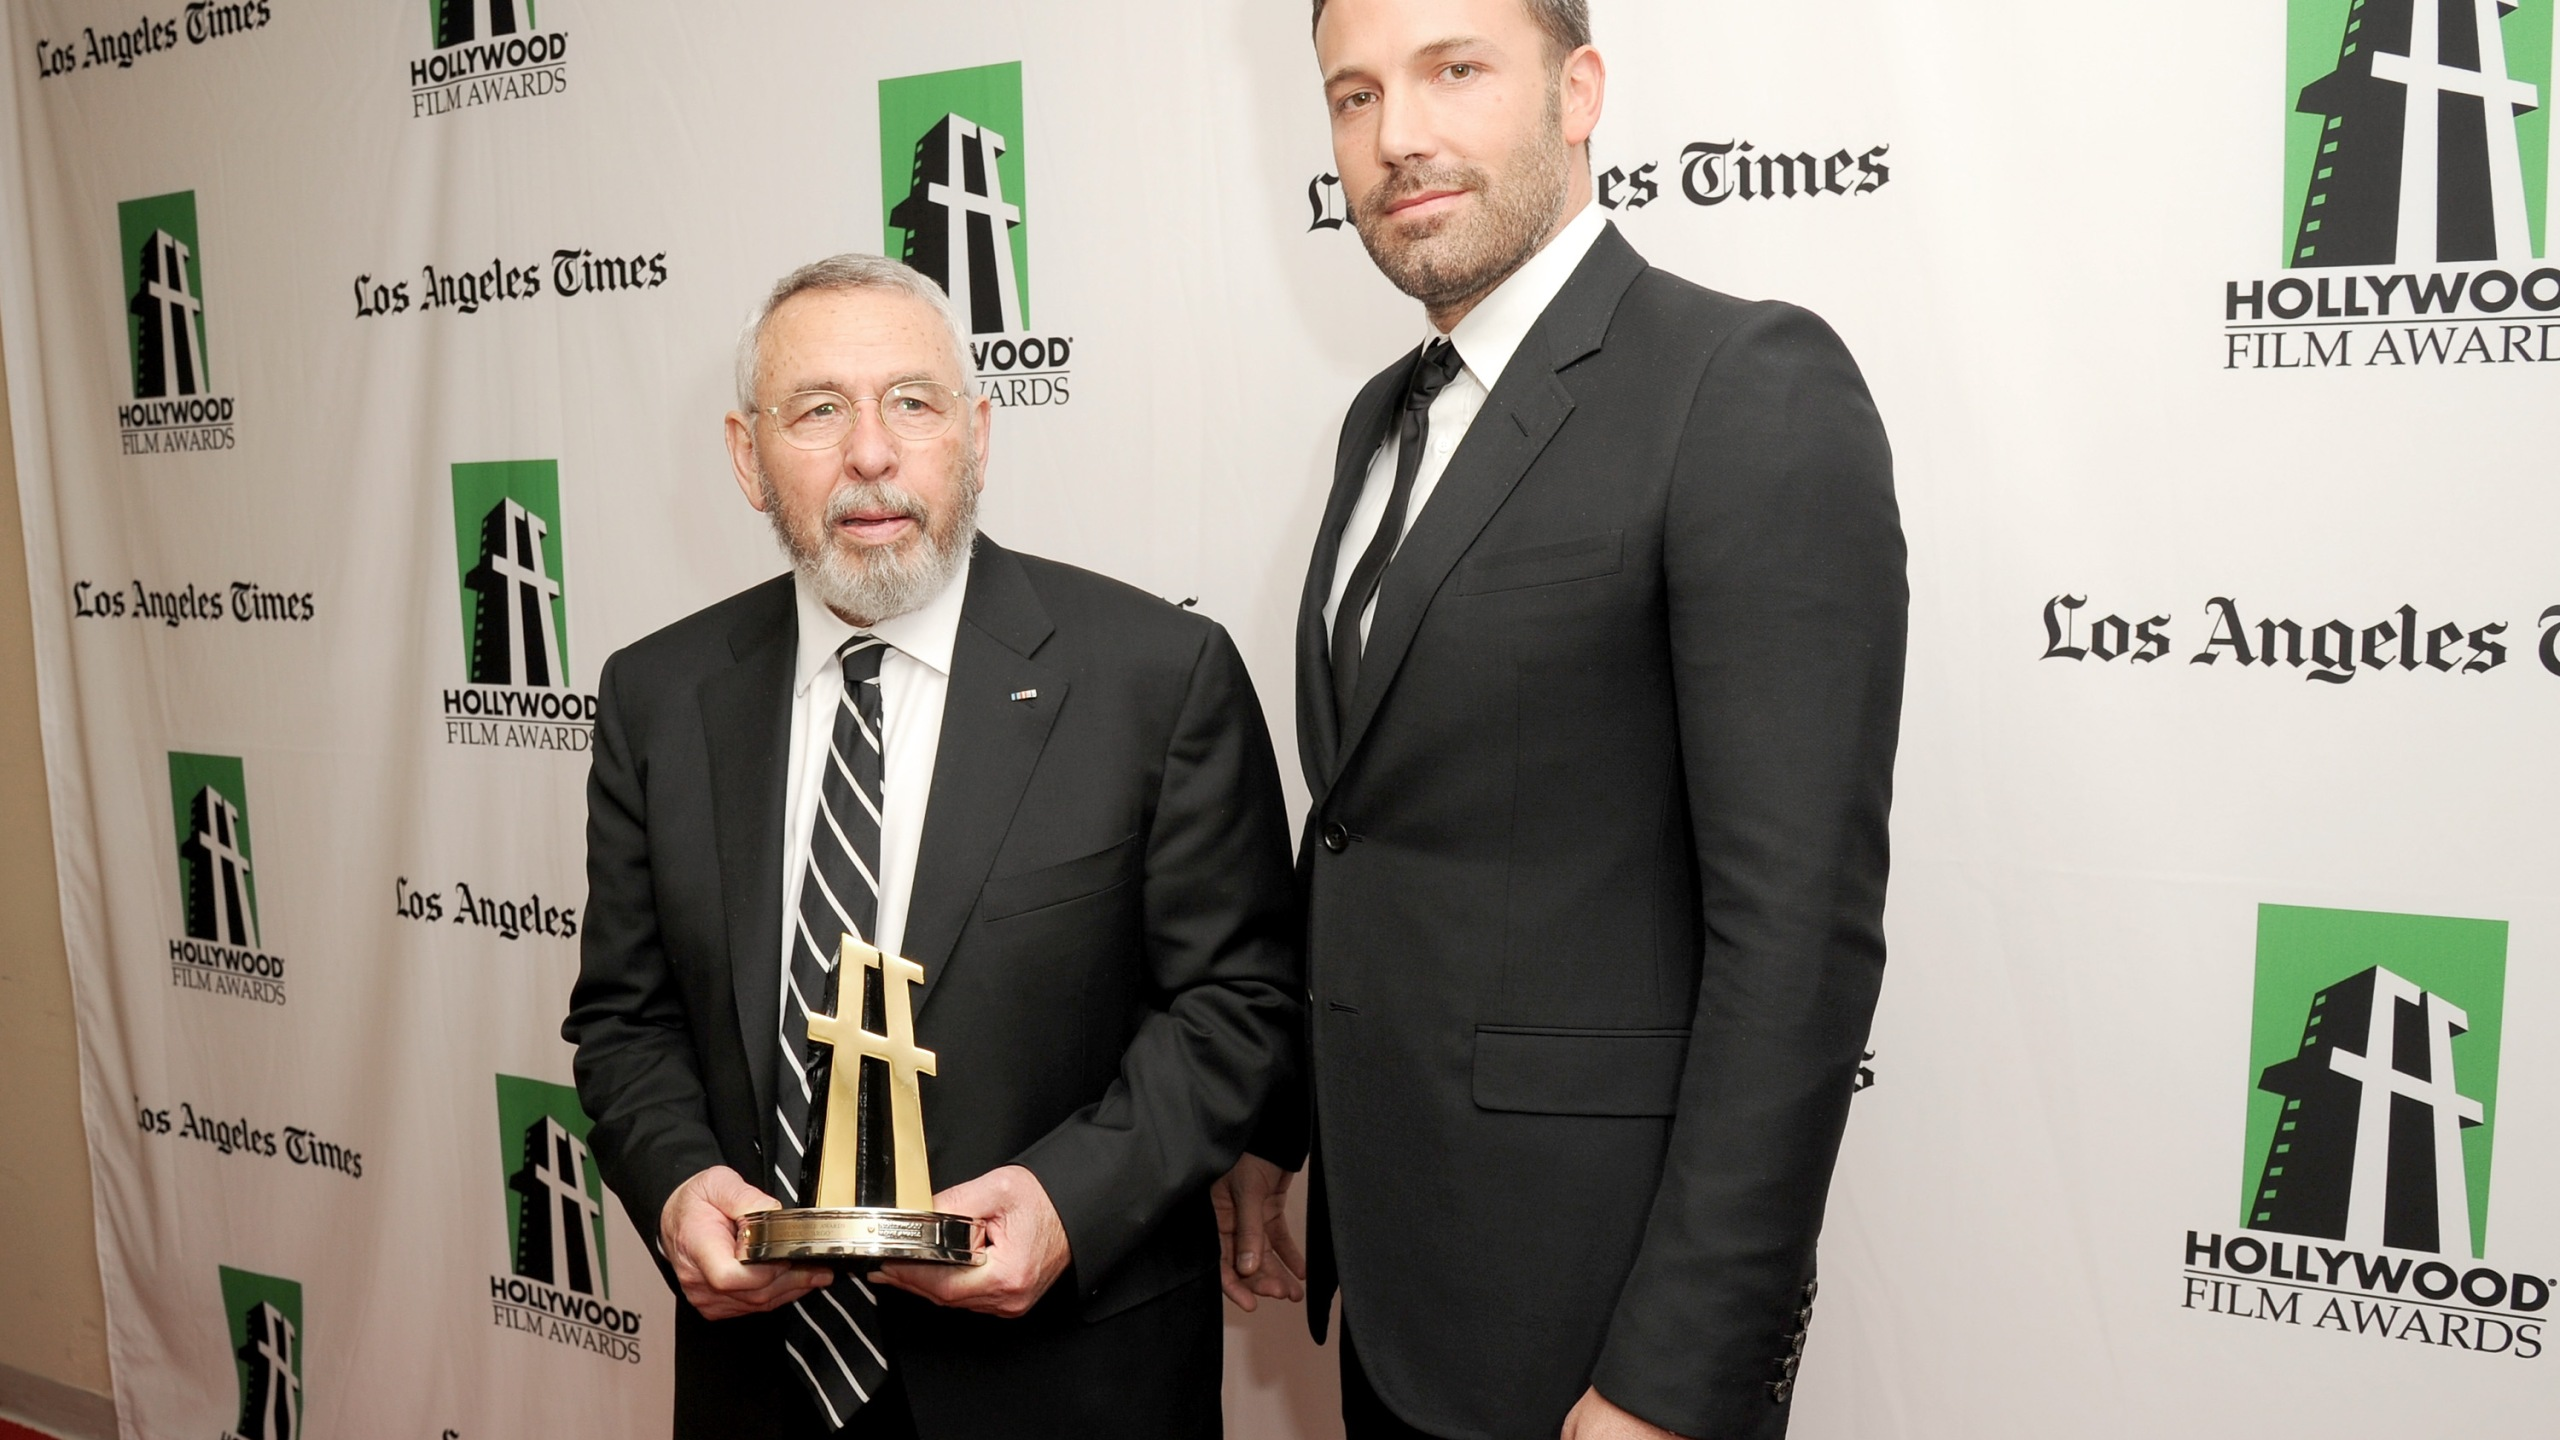 Actor Ben Affleck (R), winner of the Hollywood Ensemble Acting Award, poses with former CIA Officer Tony Mendez during the 16th Annual Hollywood Film Awards Gala presented by The Los Angeles Times held at The Beverly Hilton Hotel on October 22, 2012 in Beverly Hills, California. (Credit: Jason Merritt/Getty Images)